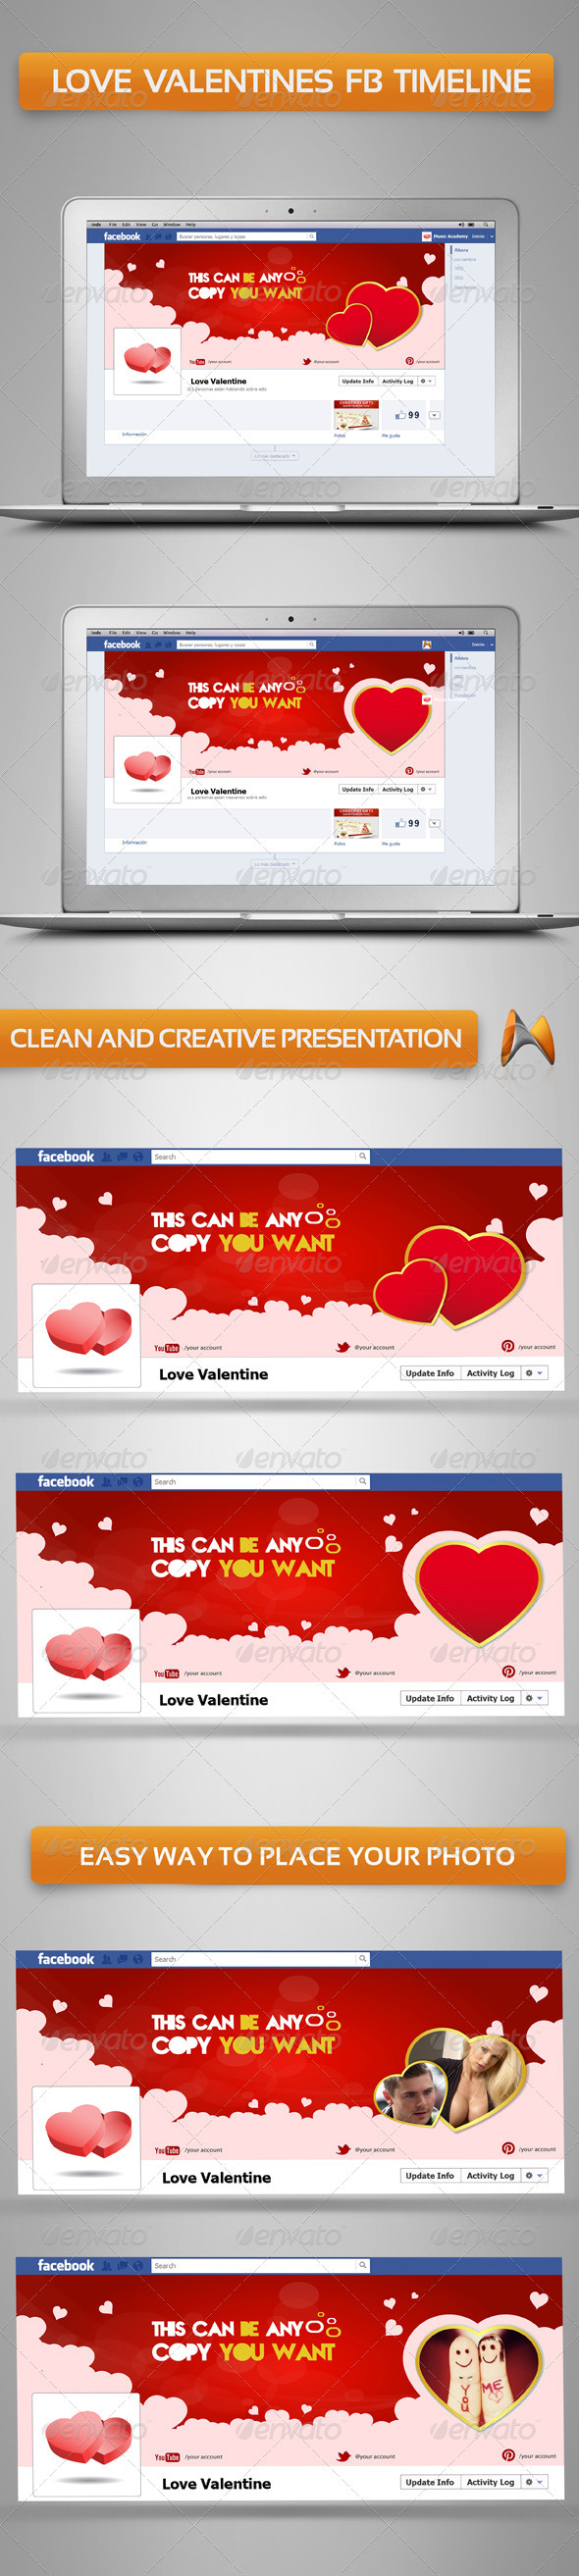 love valentine FB Timeline - Facebook Timeline Covers Social Media